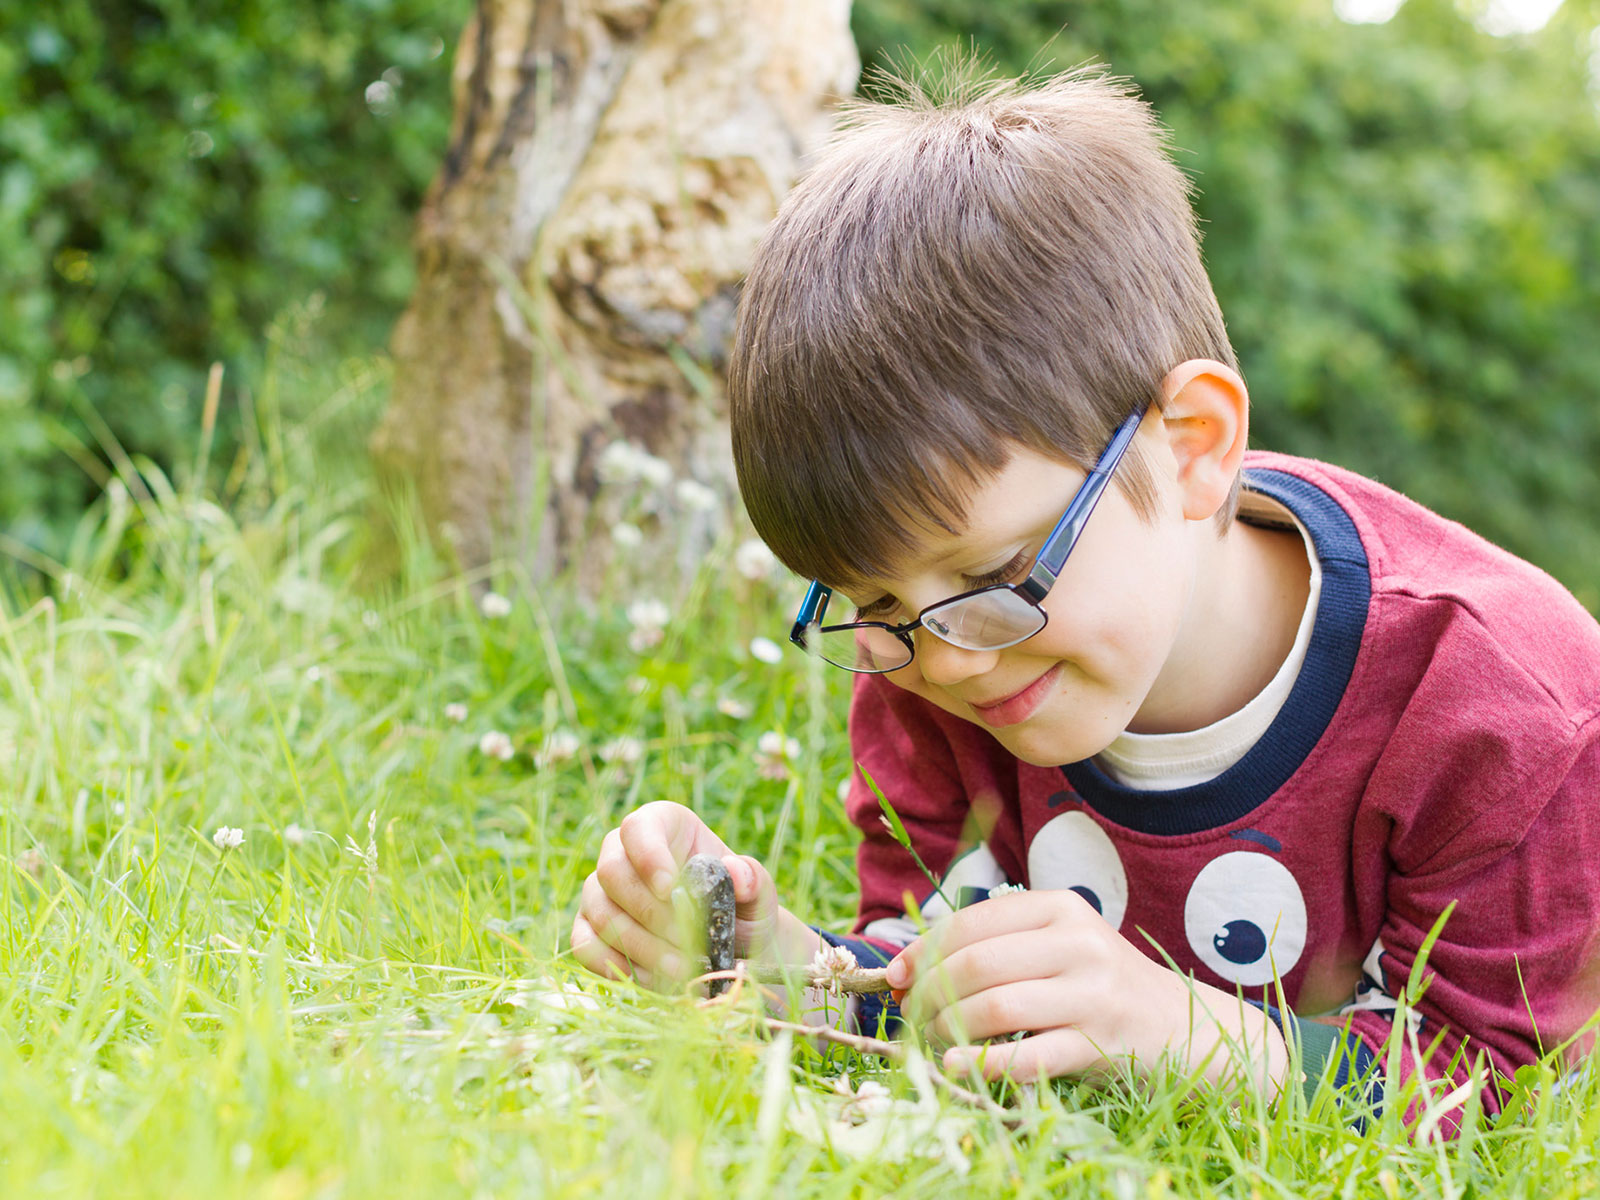 COMBS infant school photography boy lying on the grass smiling at sticks